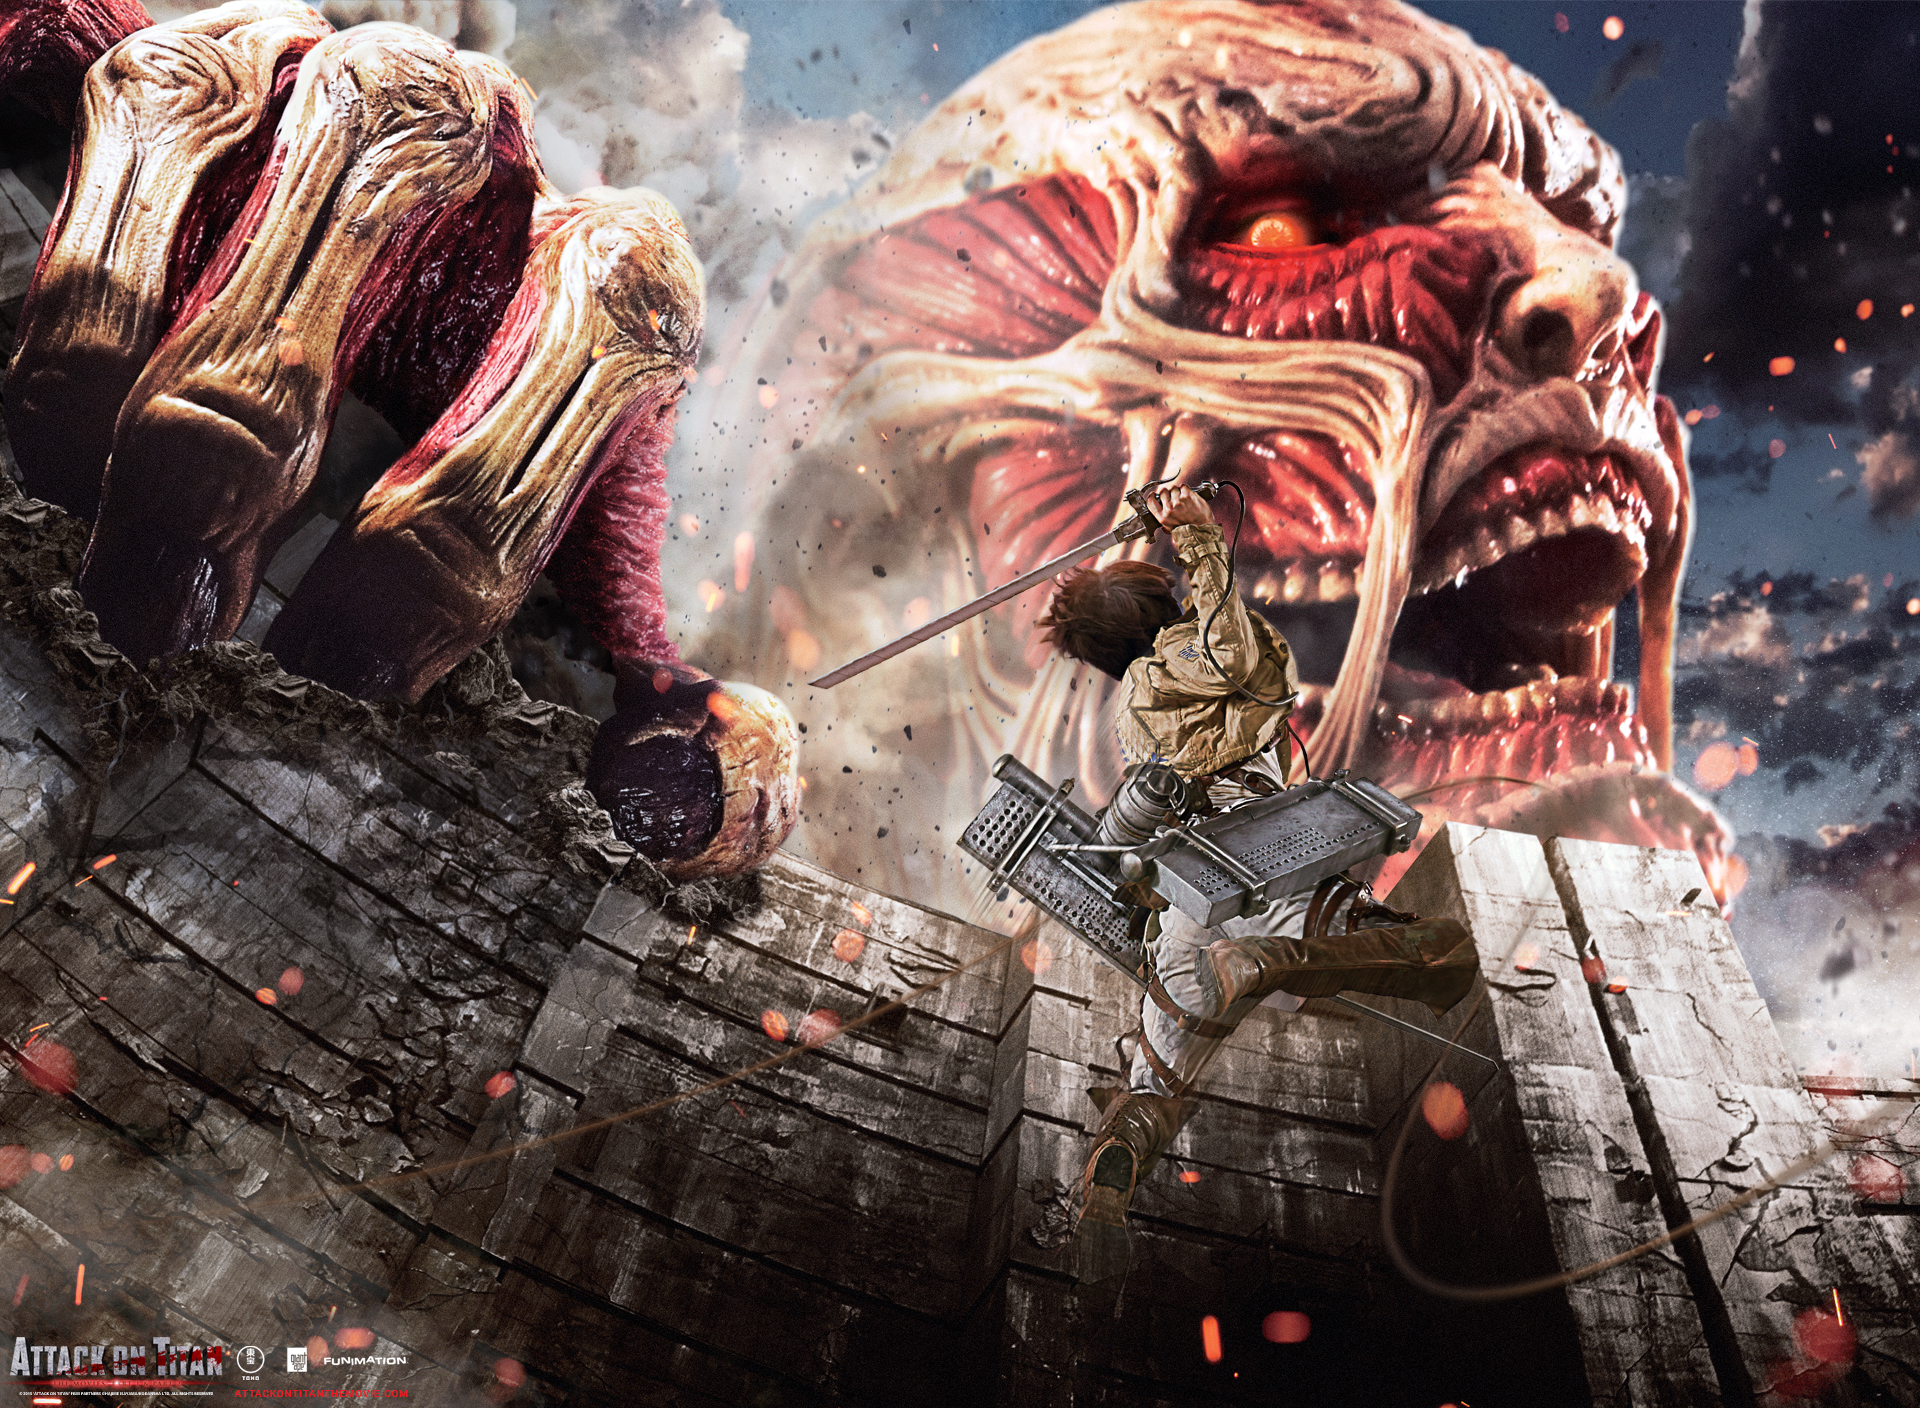 Extras Of Attack On Titan The Movie The Official Site